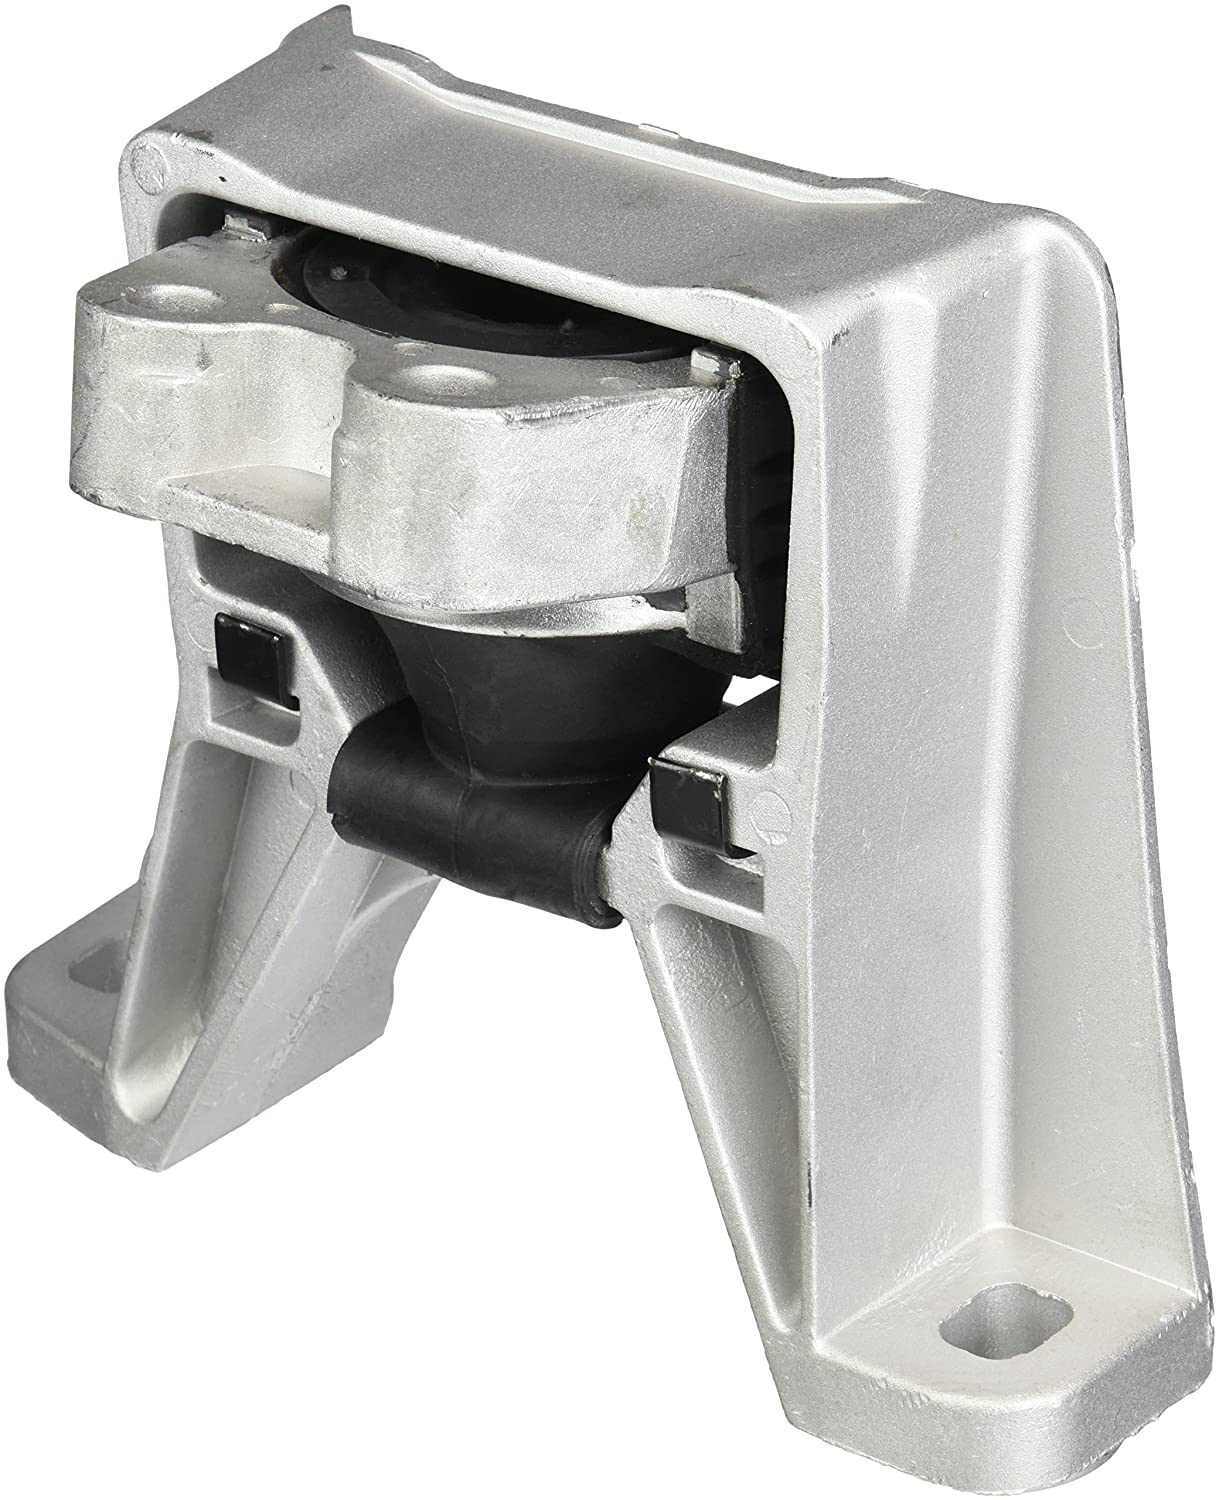 MotorKing FM02 Engine Mount (Fits Ford Focus Front Right)